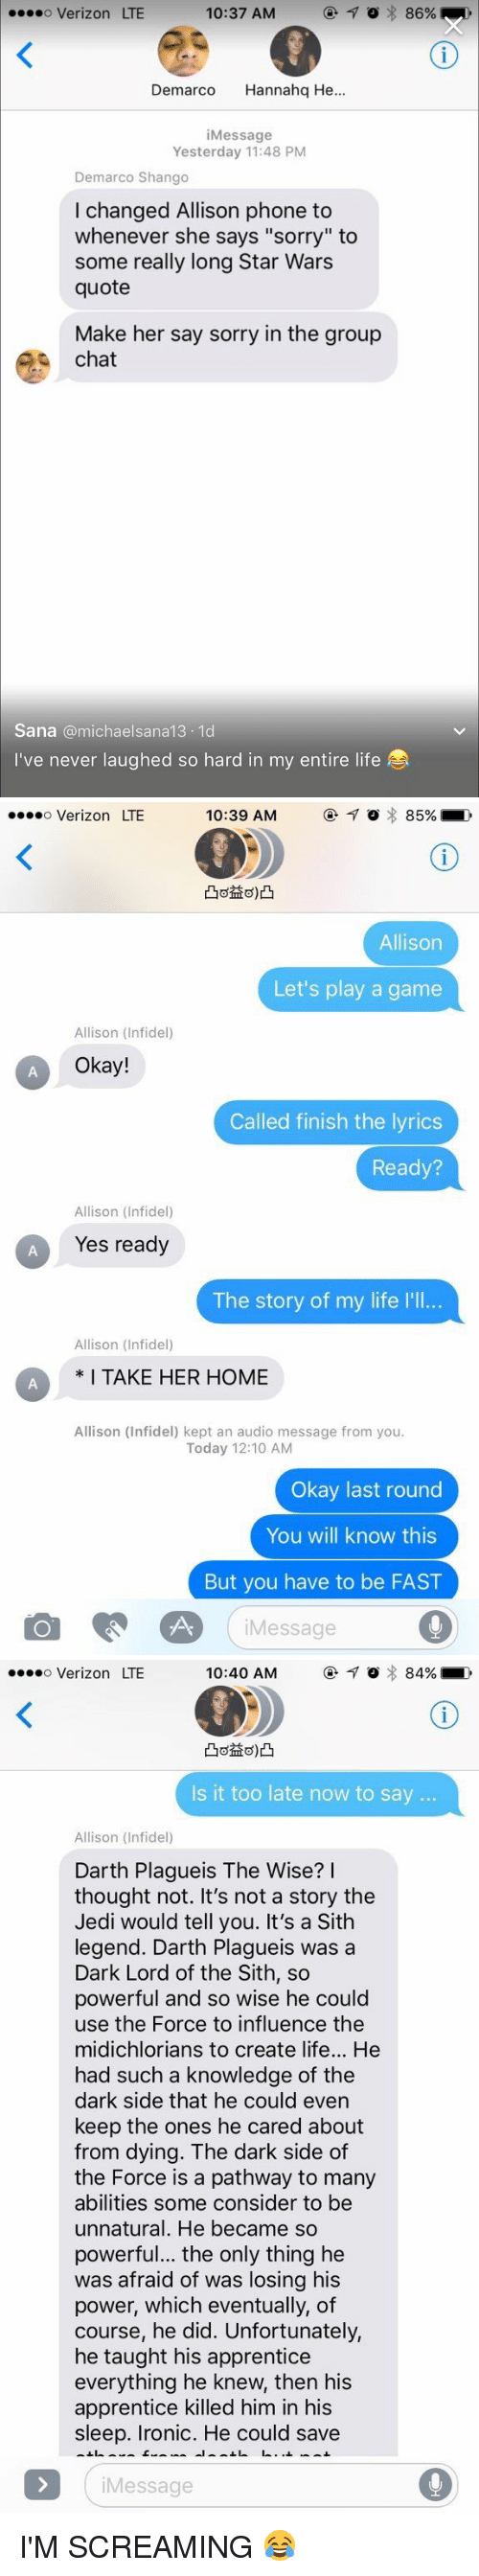 "infidelity: 10:37 AM  7 o 86%  ....o Verizon LTE  Demarco  anna  He  i Message  Yesterday 11:48 PM  Demarco Shango  I changed Allison phone to  whenever she says ""sorry"" to  some really long Star Wars  quote  Make her say sorry in the group  chat  Sana michael sana 13.1d  I've never laughed so hard in my entire life   10:39 AM  o 85%  o Verizon LTE  Allison  Let's play a game  Allison (Infidel)  Okay!  Called finish the lyrics  Ready?  Allison (Infidel)  Yes ready  The story of my life l'll...  Allison (Infidel)  CA I TAKE HER HOME  Allison (Infidel) kept an audio message from you.  Today 12:10 AM  Okay last round  You will know this  But you have to be FAST  Message   o Verizon LTE  84%  10:40 AM  Is it too late now to say  Allison (Infidel)  Darth Plagueis The Wise?  I  thought not. It's not a story the  Jedi would tell you. It's a Sith  legend. Darth Plagueis was a  Dark Lord of the Sith, so  powerful and so wise he could  use the Force to influence the  midichlorians to create life... He  had such a knowledge of the  dark side that he could even  keep the ones he cared about  from dying. The dark side of  the Force is a pathway to many  abilities some consider to be  unnatural. He became so  powerful... the only thing he  was afraid of was losing his  power, which eventually, of  course, he did. Unfortunately,  he taught his apprentice  everything he knew, then his  apprentice killed him in his  sleep. Ironic. He could save  Message I'M SCREAMING 😂"